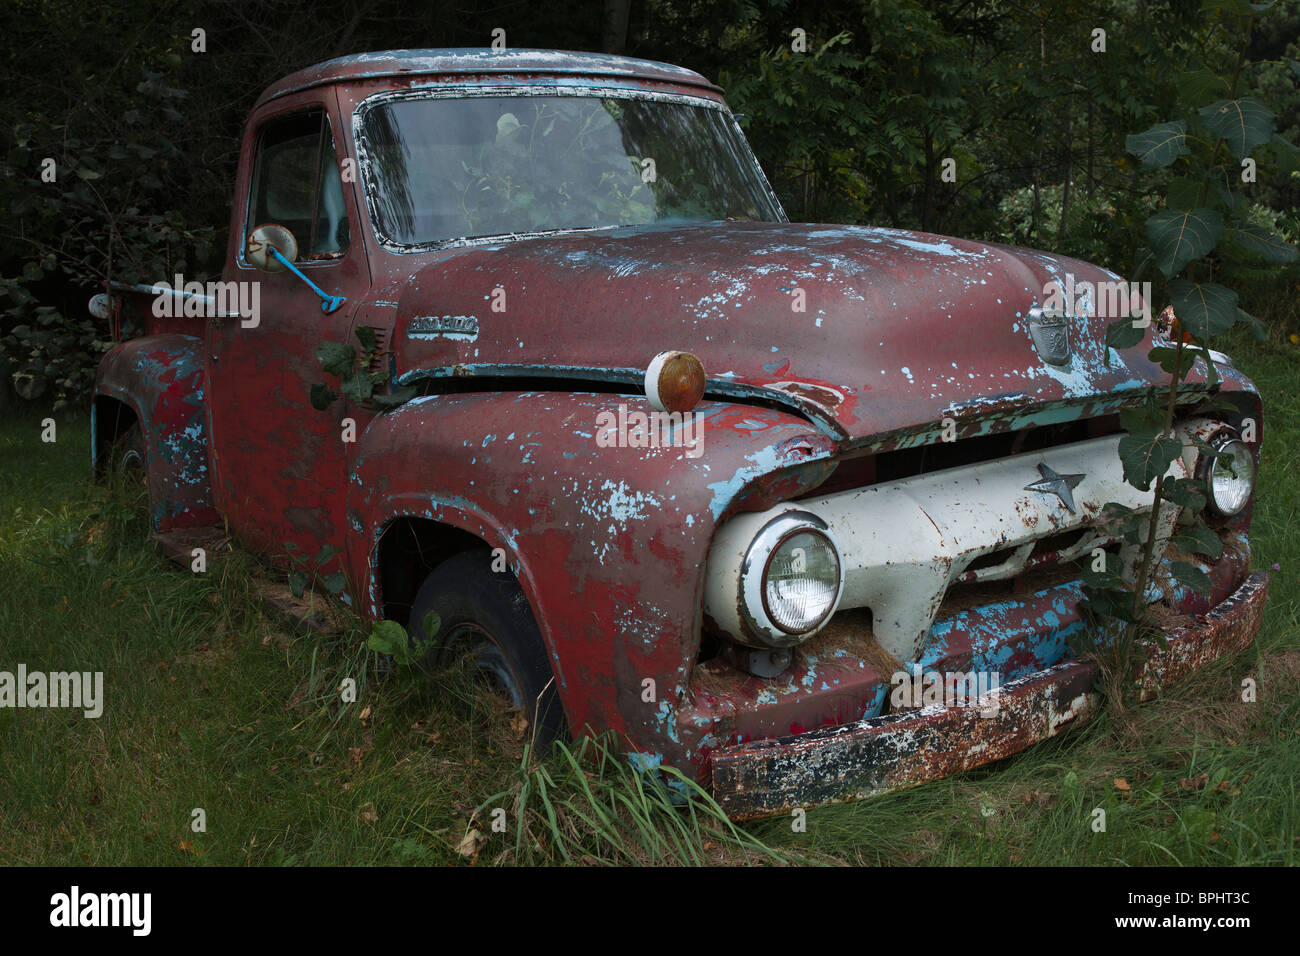 Ford F100 Pickup Truck Stock Photos 1955 Art An Old Rusty No Not People Nobody Isolated Image